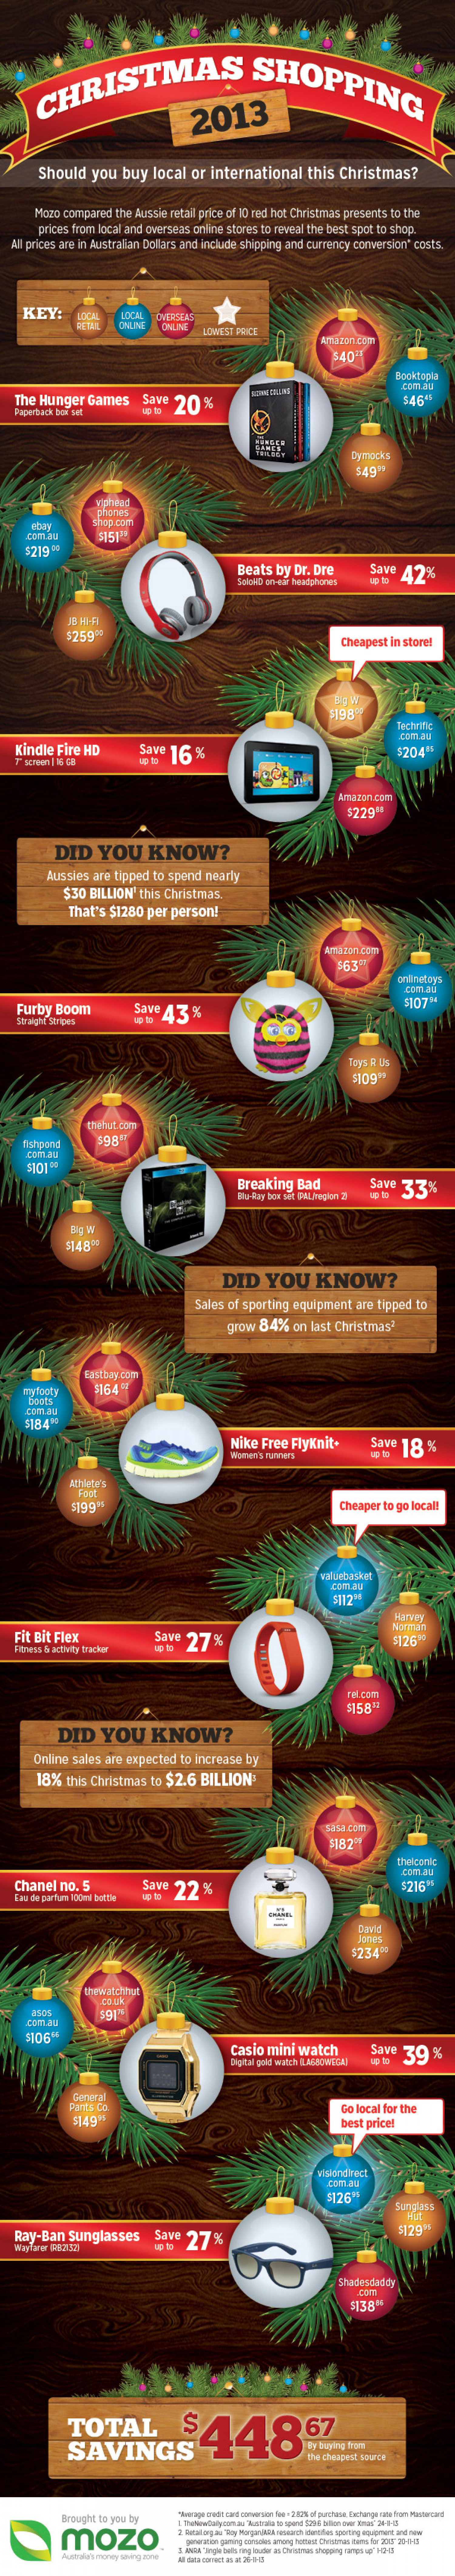 Christmas shopping 2013: Should you buy local or overseas? Infographic